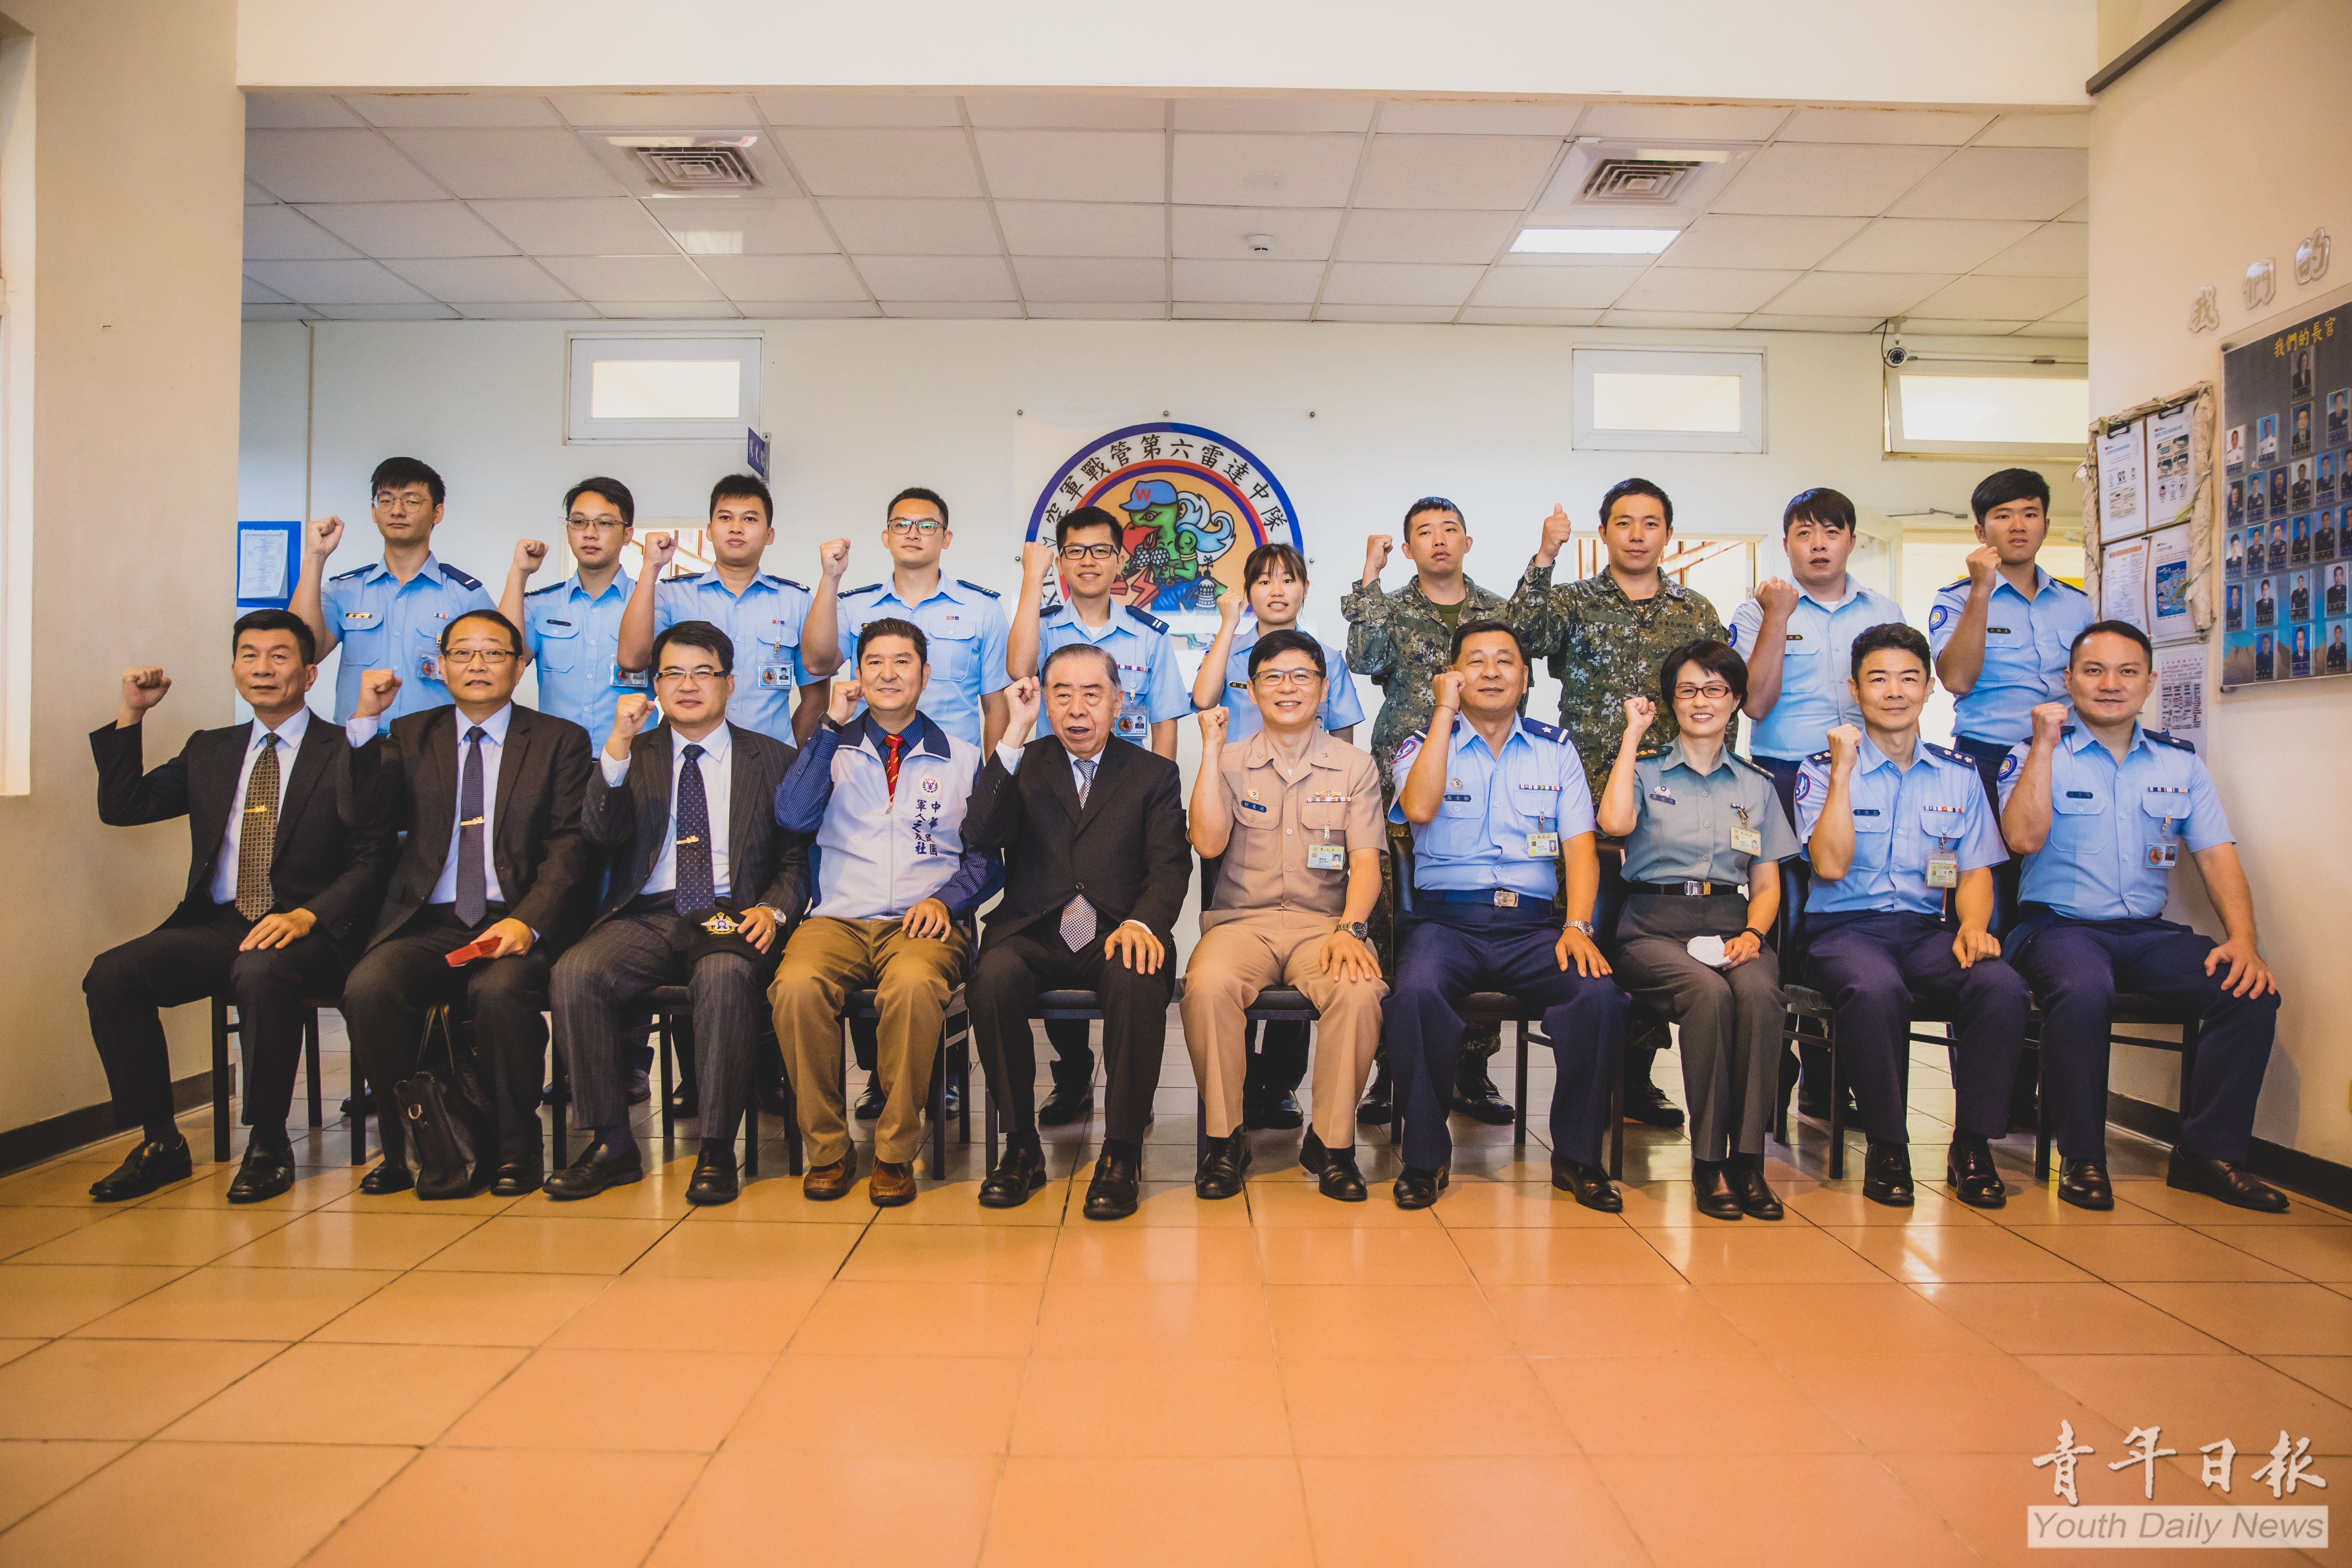 Chairman of FAFA Visits Northern Taiwan Military Units to Bring Warm Case for Troops